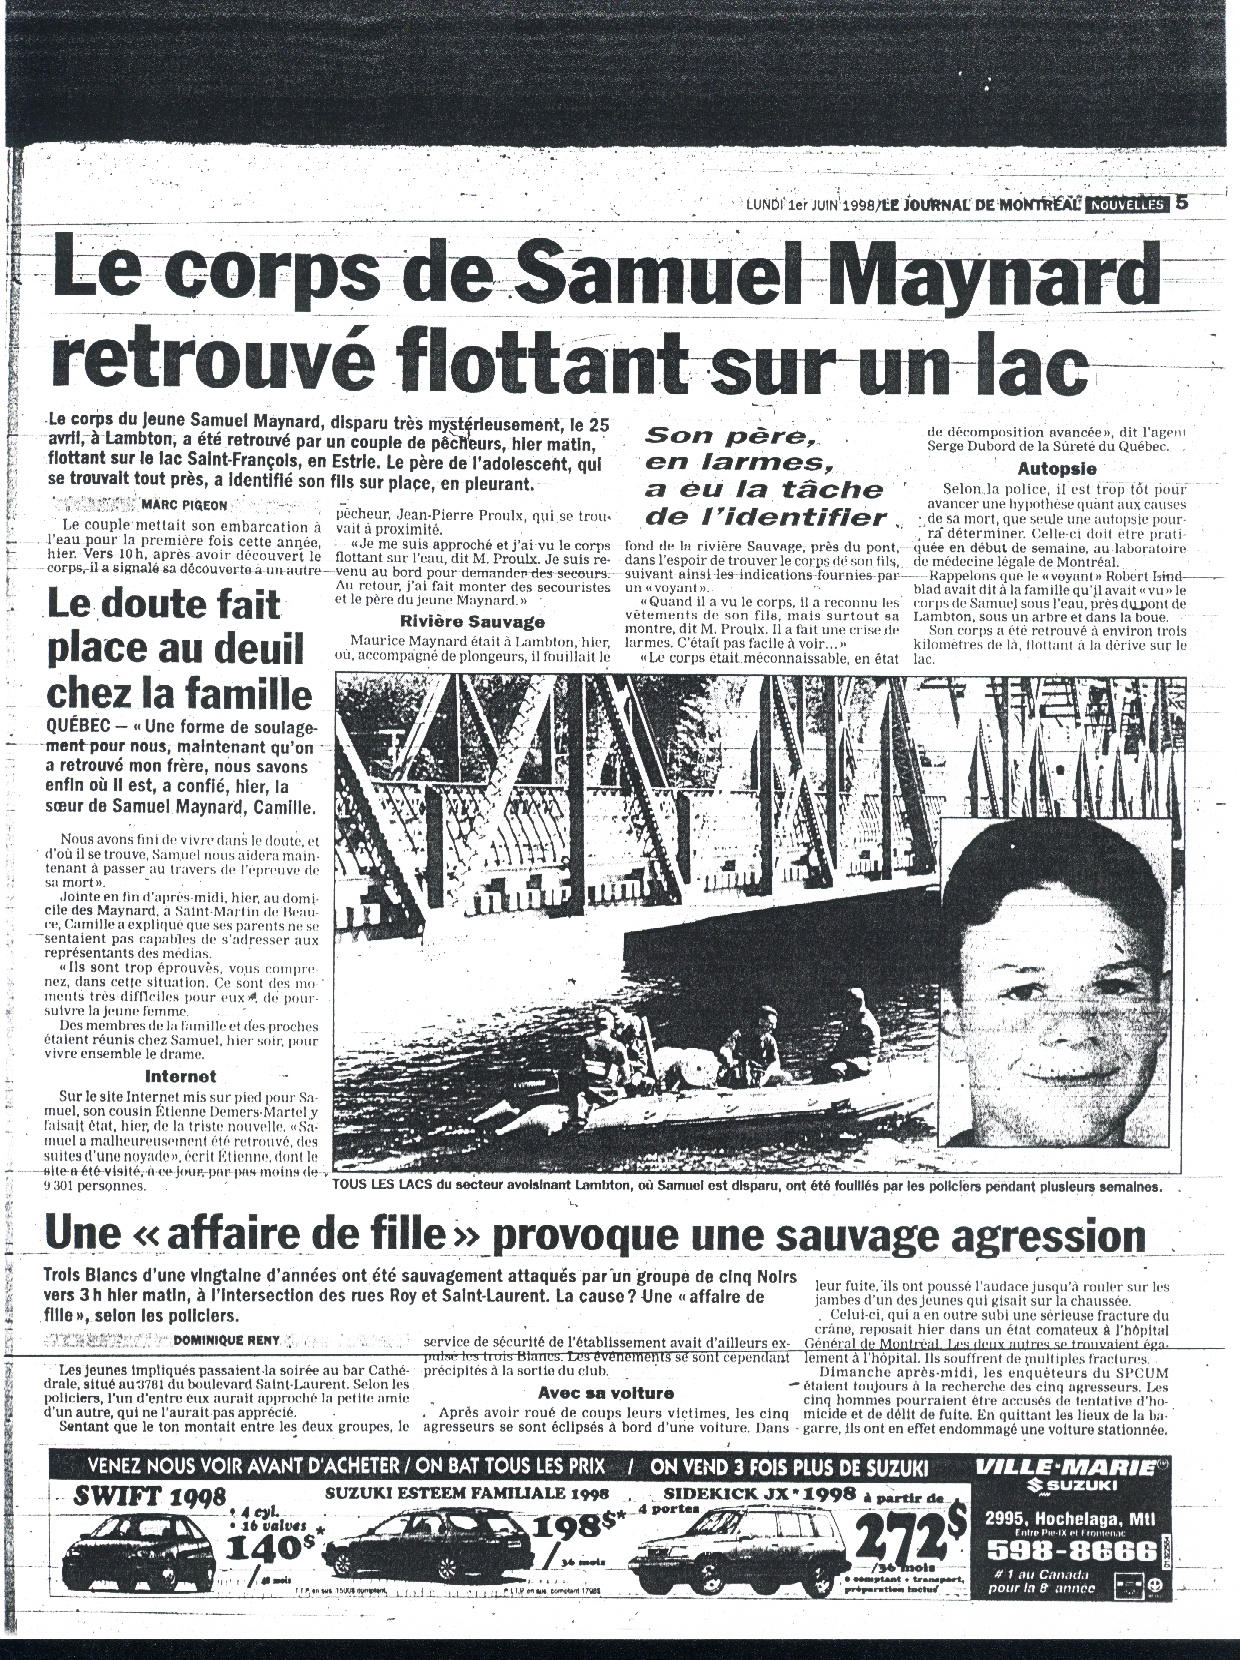 Journal de Montreal 1 - 6 - 98